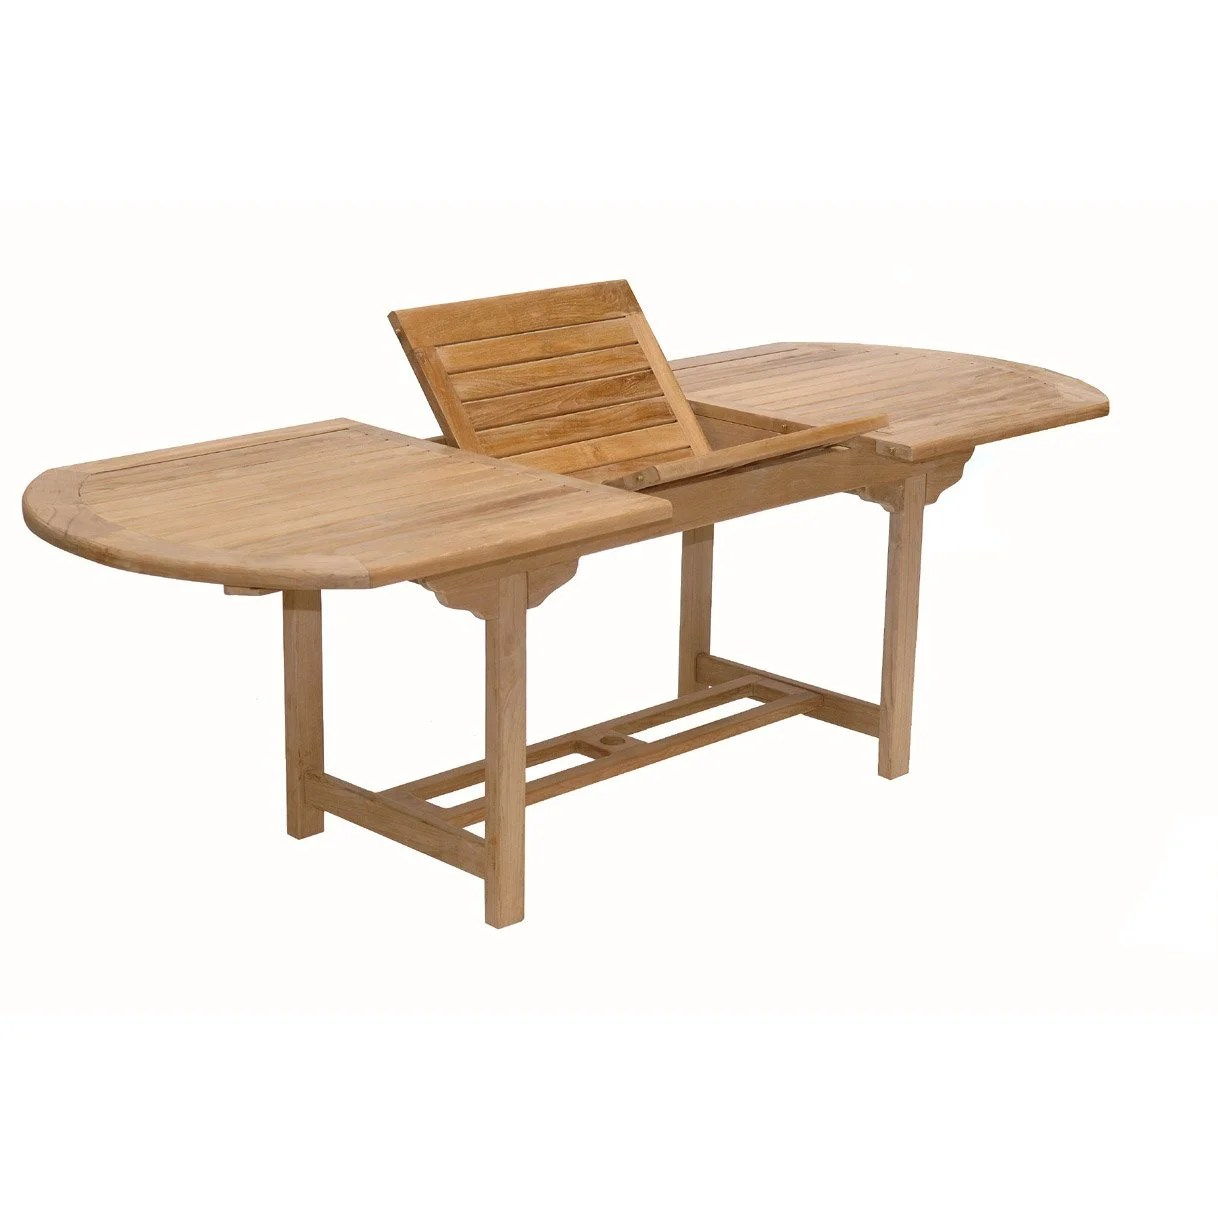 Leroy Merlin Table De Jardin Table De Jardin Azur Ovale Naturel 8 Personnes Leroy Merlin